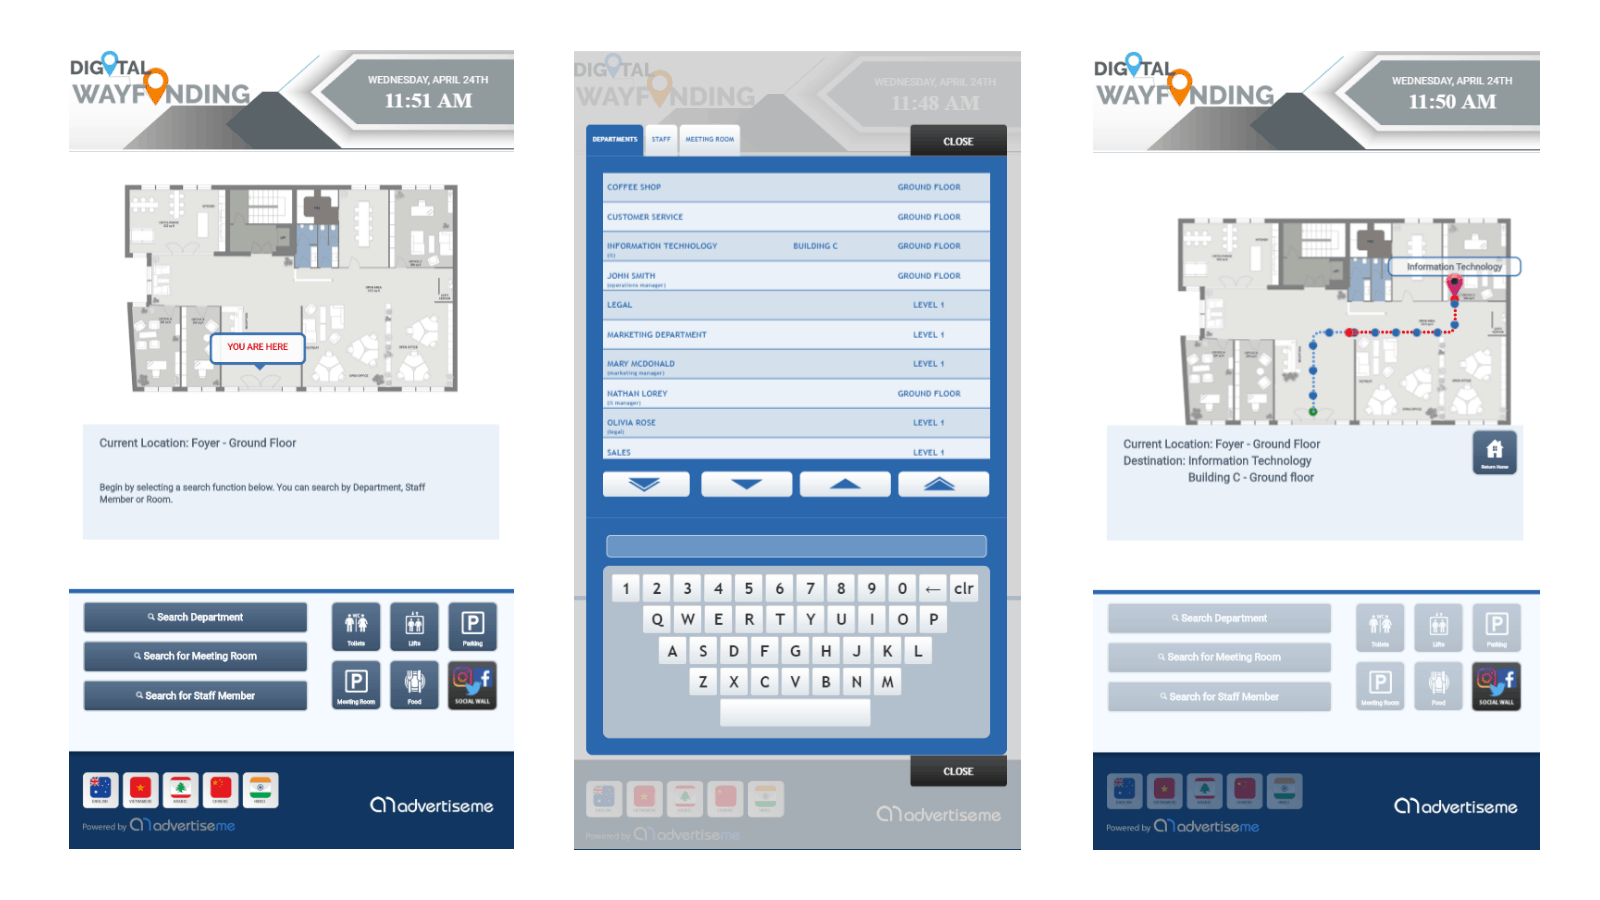 Digital Wayfinding Office - Buildings Floorplans